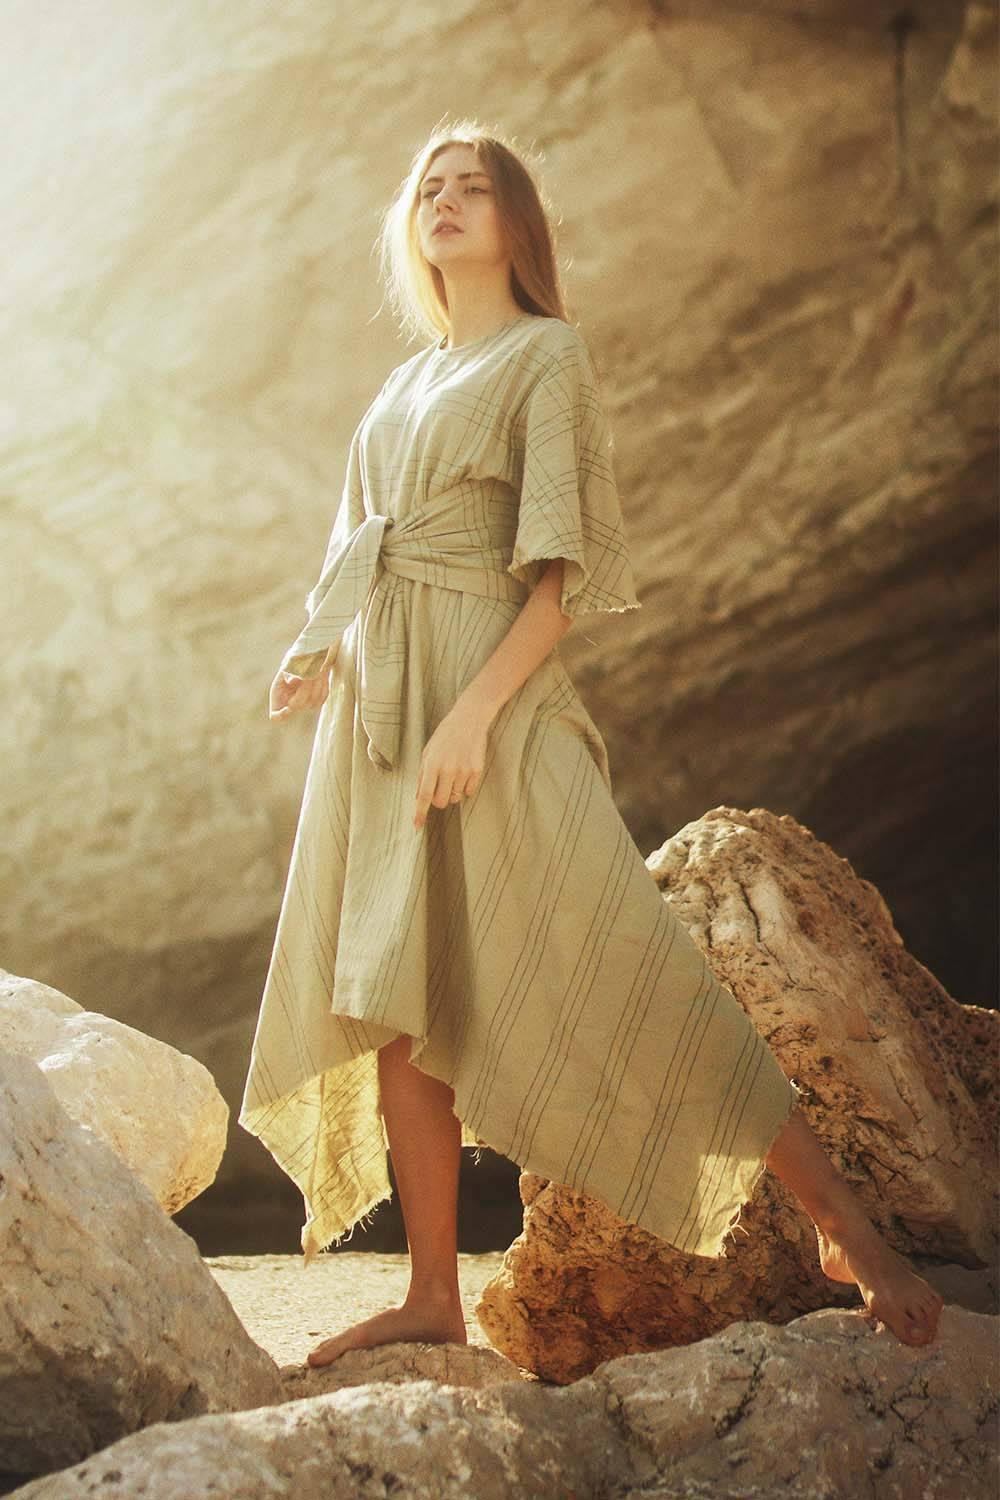 linen clothing beach night outfit